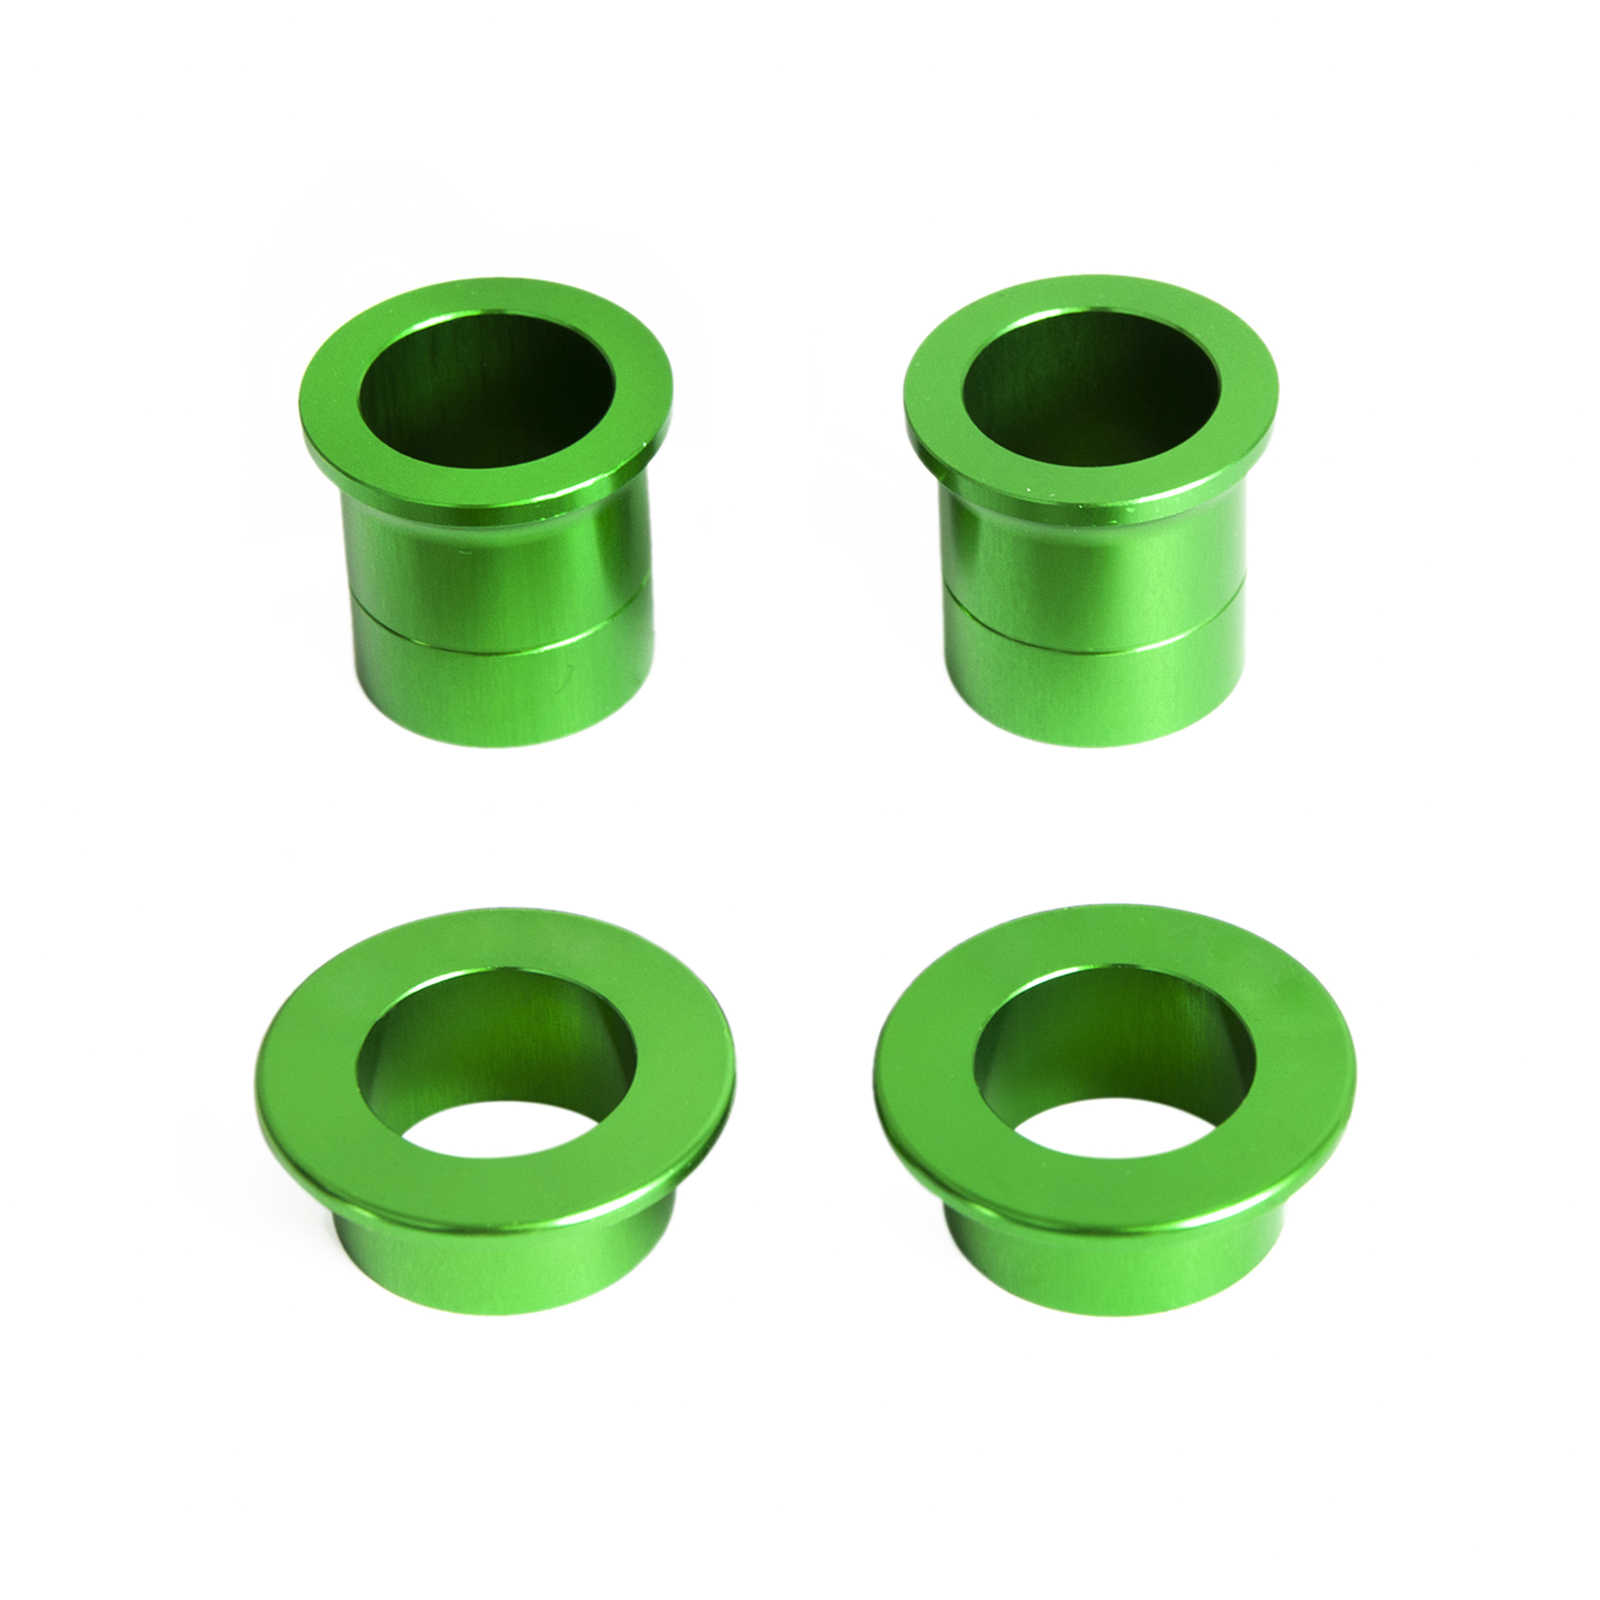 Phenomenal Cnc Front And Rear Wheel Spacers Hub Collars For Kx125 Kx250 Pabps2019 Chair Design Images Pabps2019Com